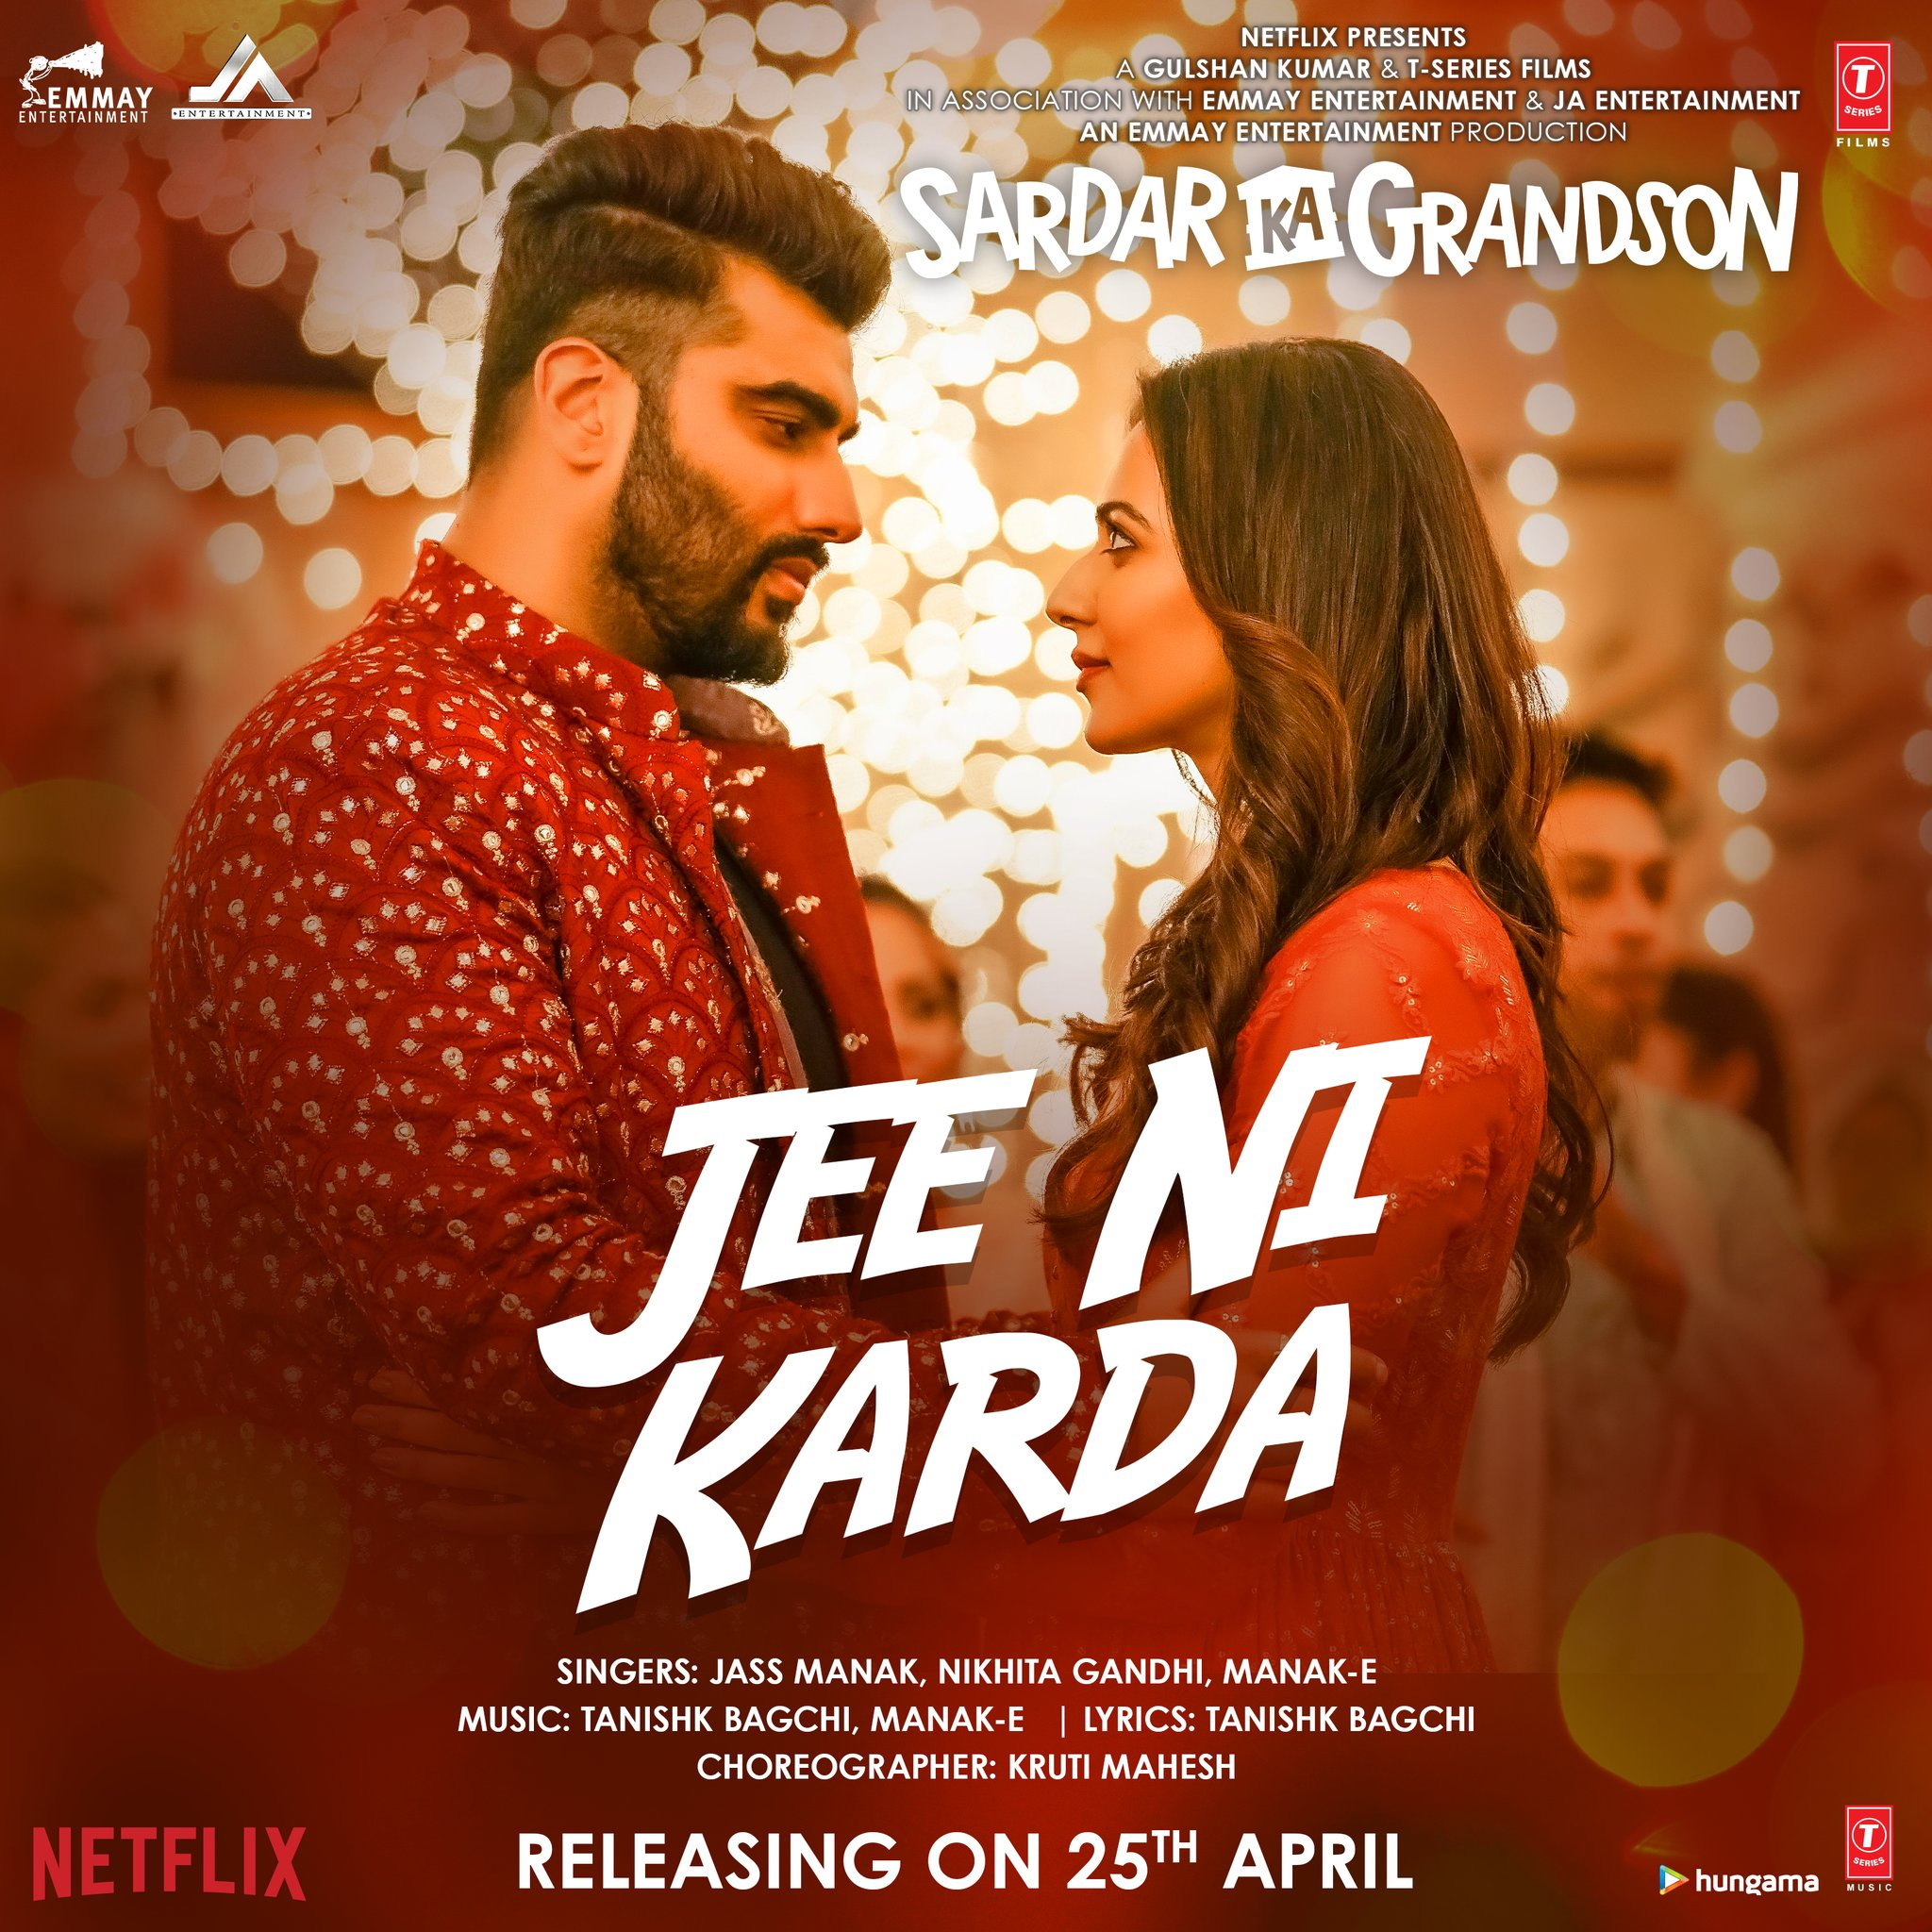 Jee Ni Karda (Sardar Ka Grandson) 2021 Hindi Video Song 1080p HDRip Download